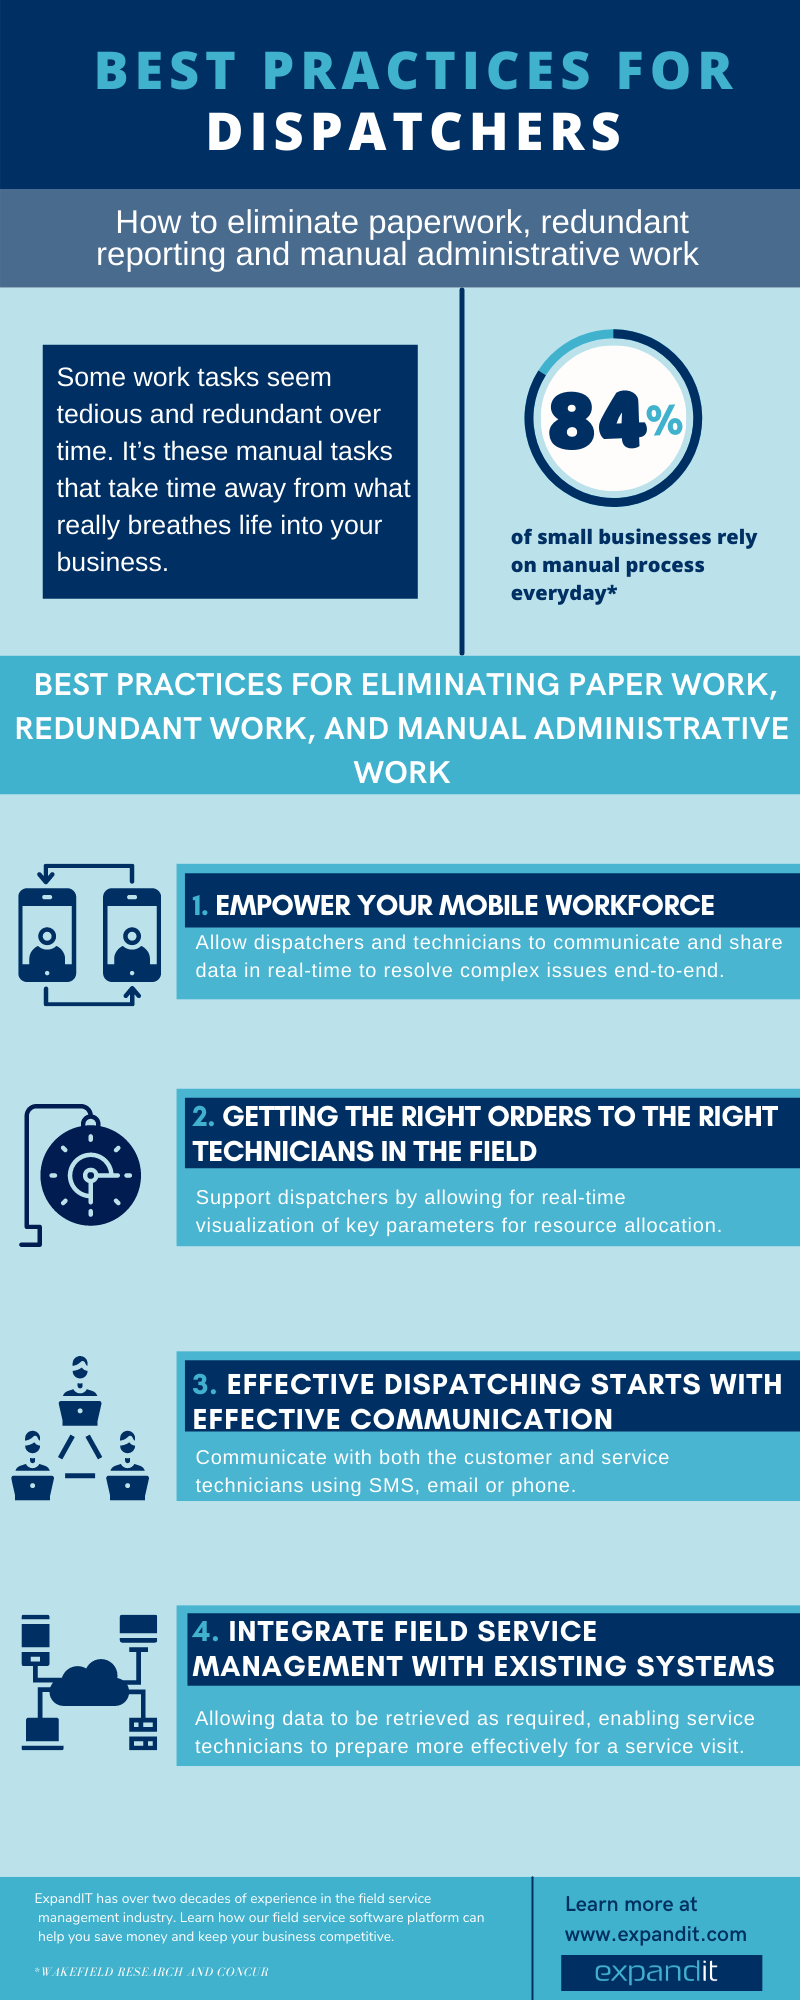 Best Practices for Dispatchers infographic